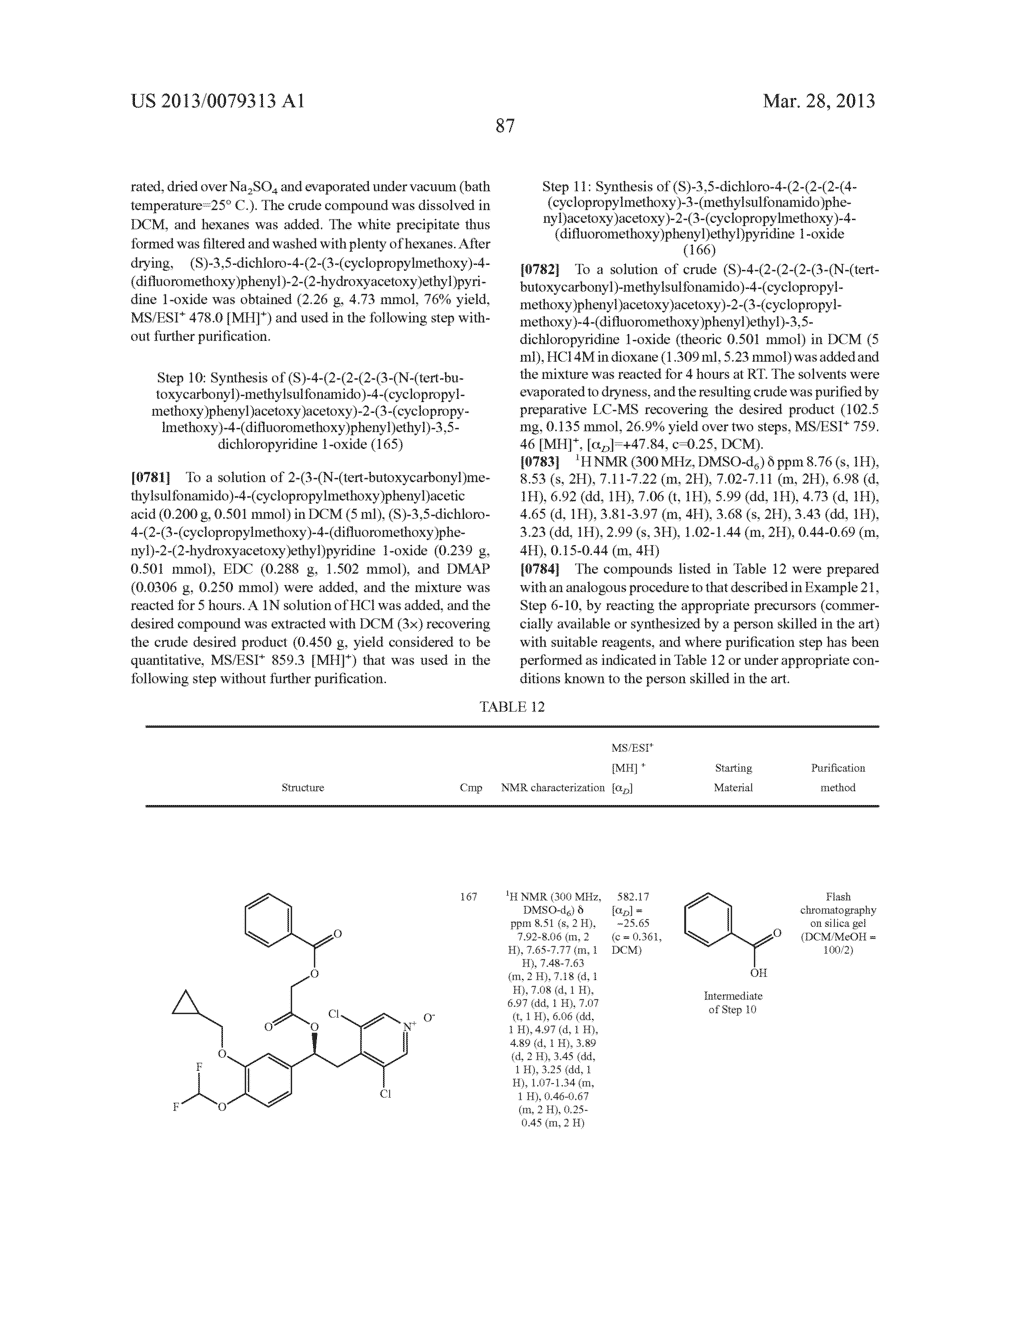 DERIVATIVES OF 1-PHENYL-2-PYRIDINYL ALKYL ALCOHOLS AS PHOSPHODIESTERASE     INHIBITORS - diagram, schematic, and image 88